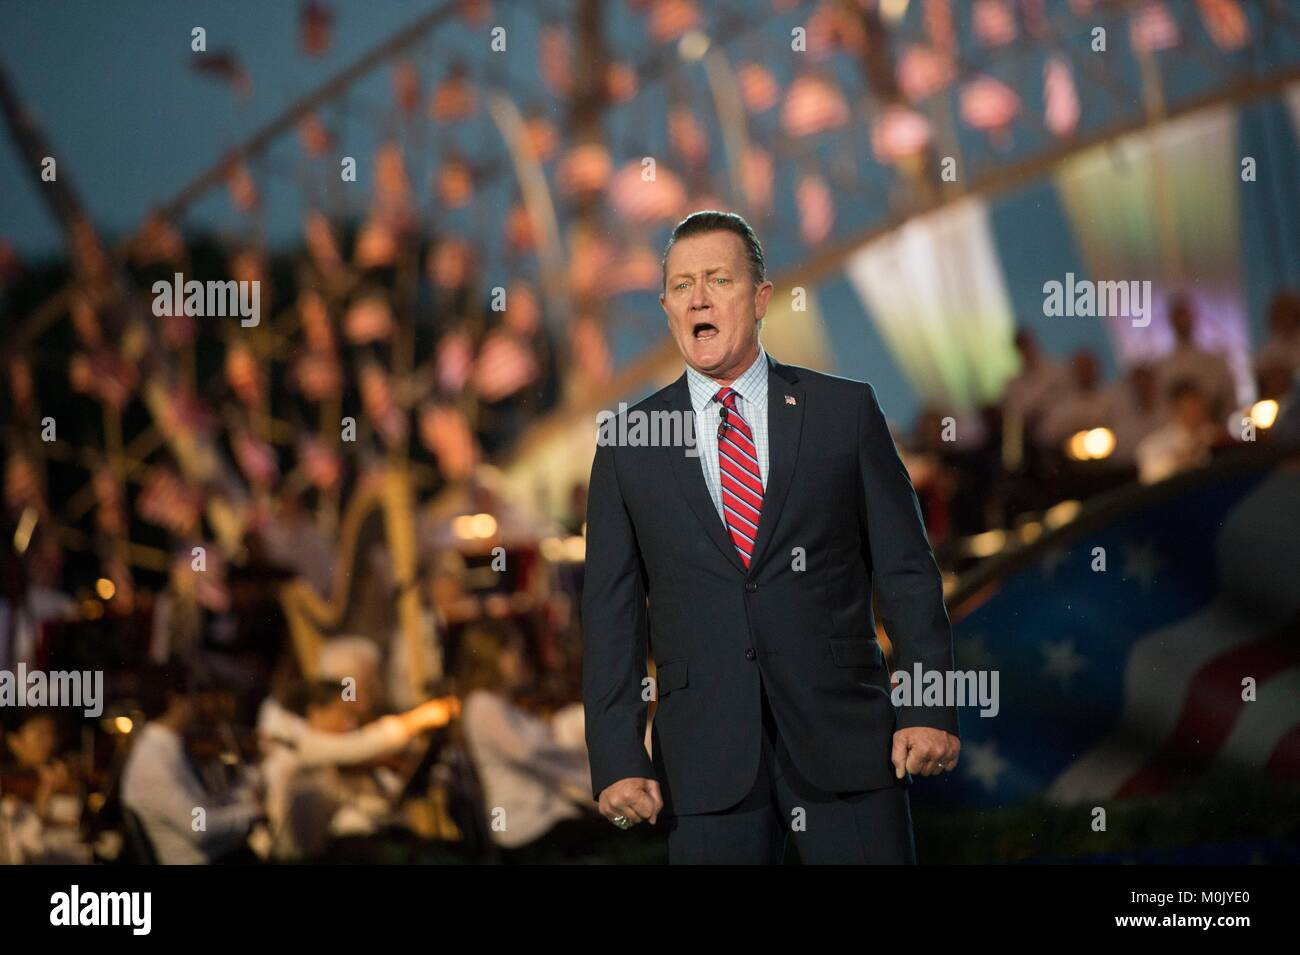 Actor Robert Patrick performs during the National Memorial Day Concert at the U.S. Capitol West Lawn May 28, 2017 - Stock Image